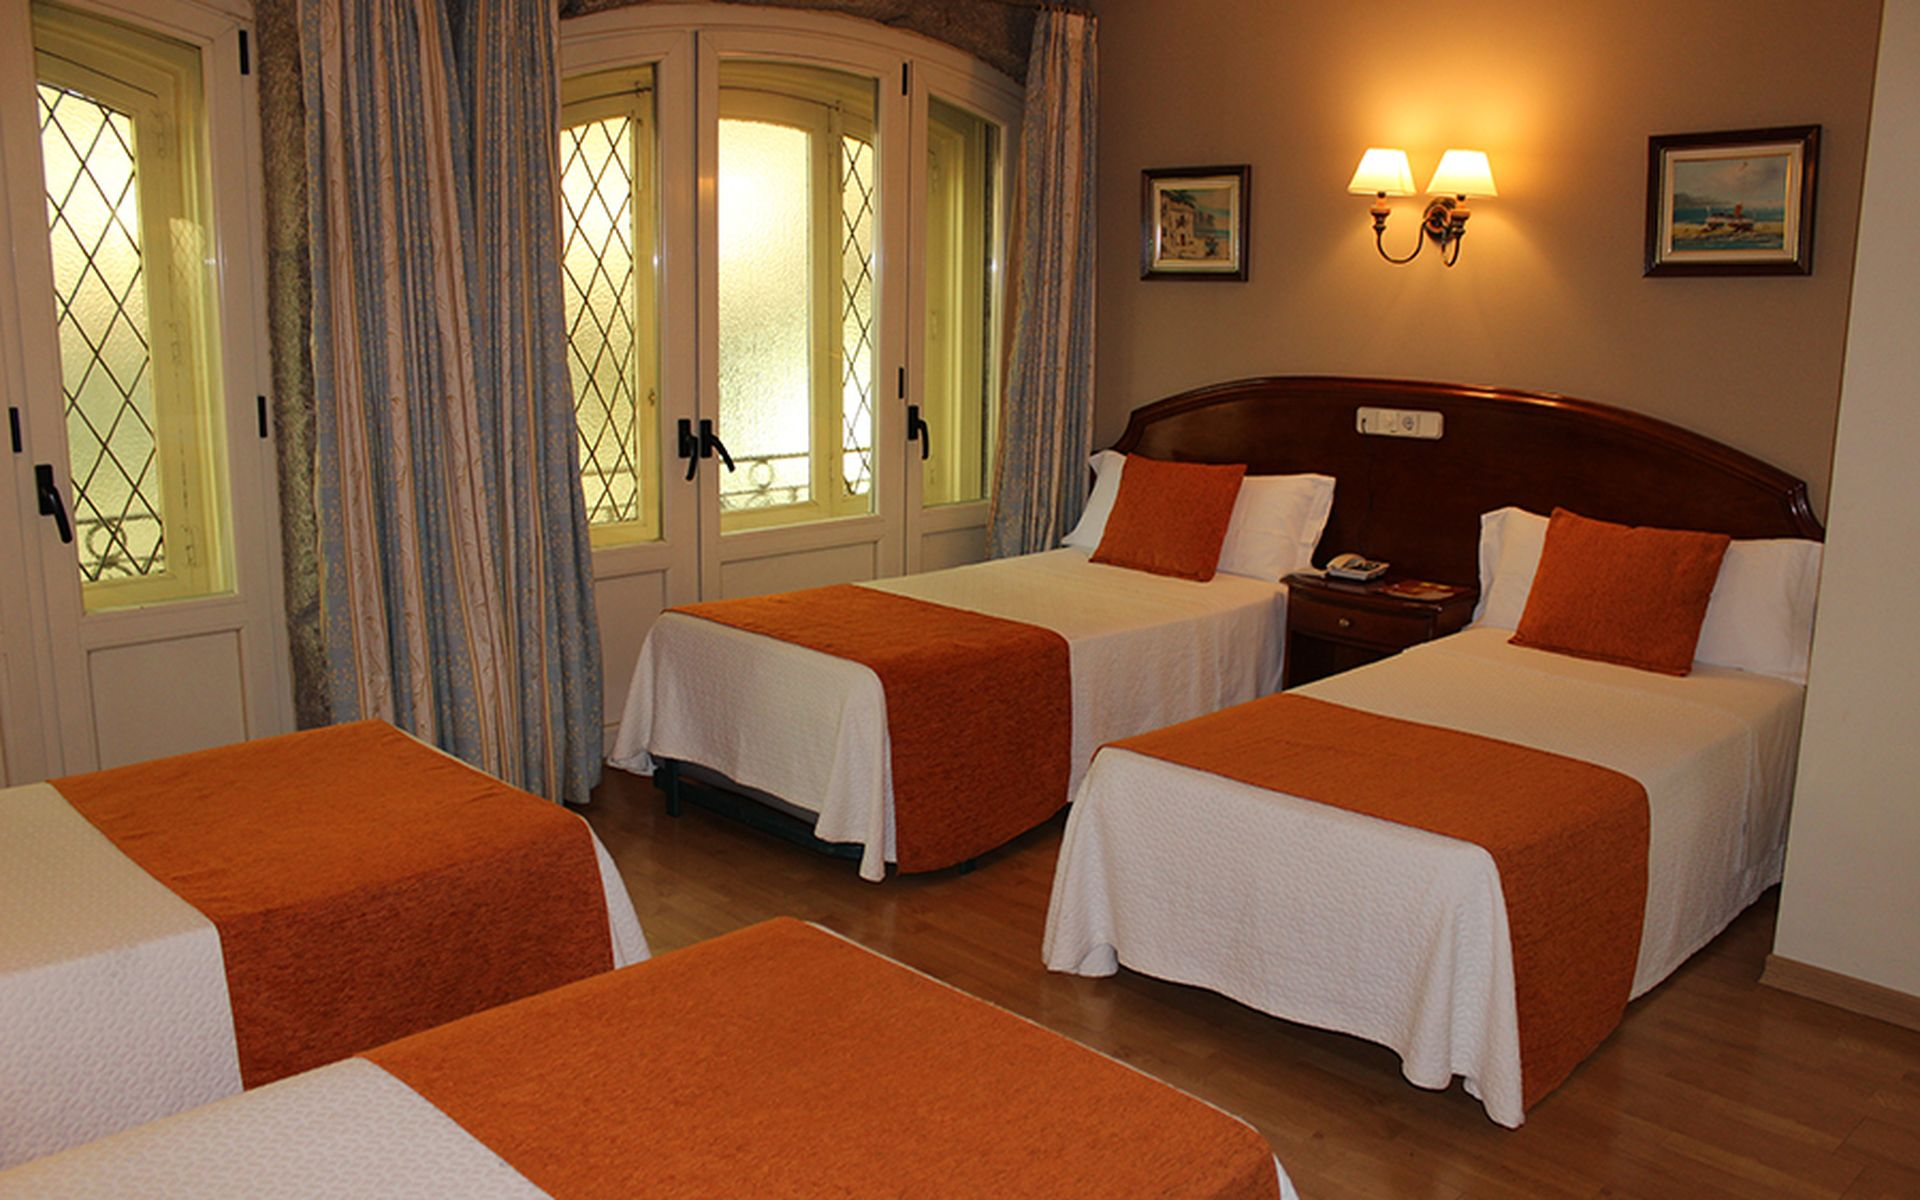 Hostal san lorenzo madrid logitravel for Habitacion cuadruple